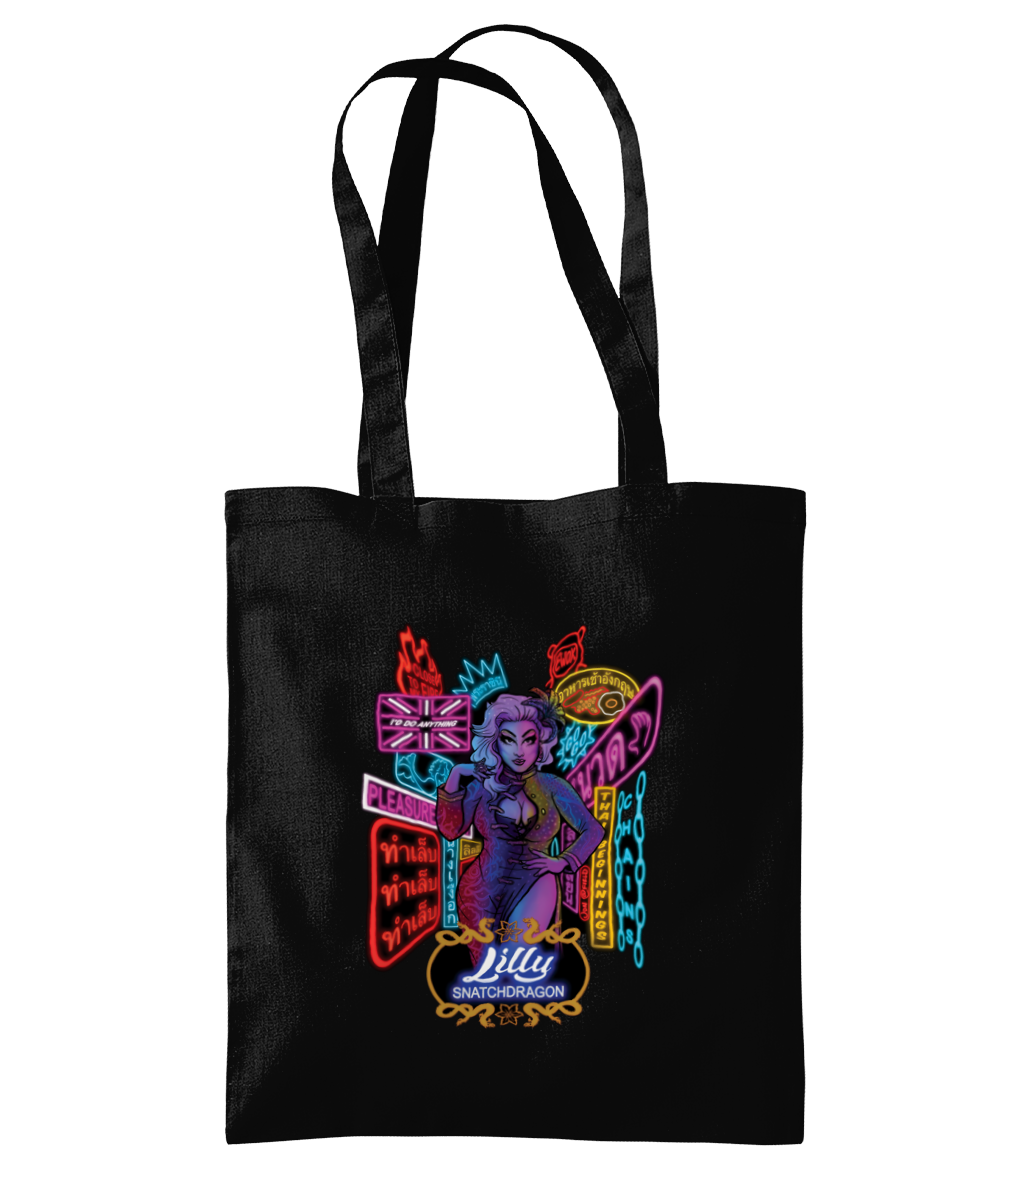 Lilly Snatchdragon - Official Merch - Tote Bag